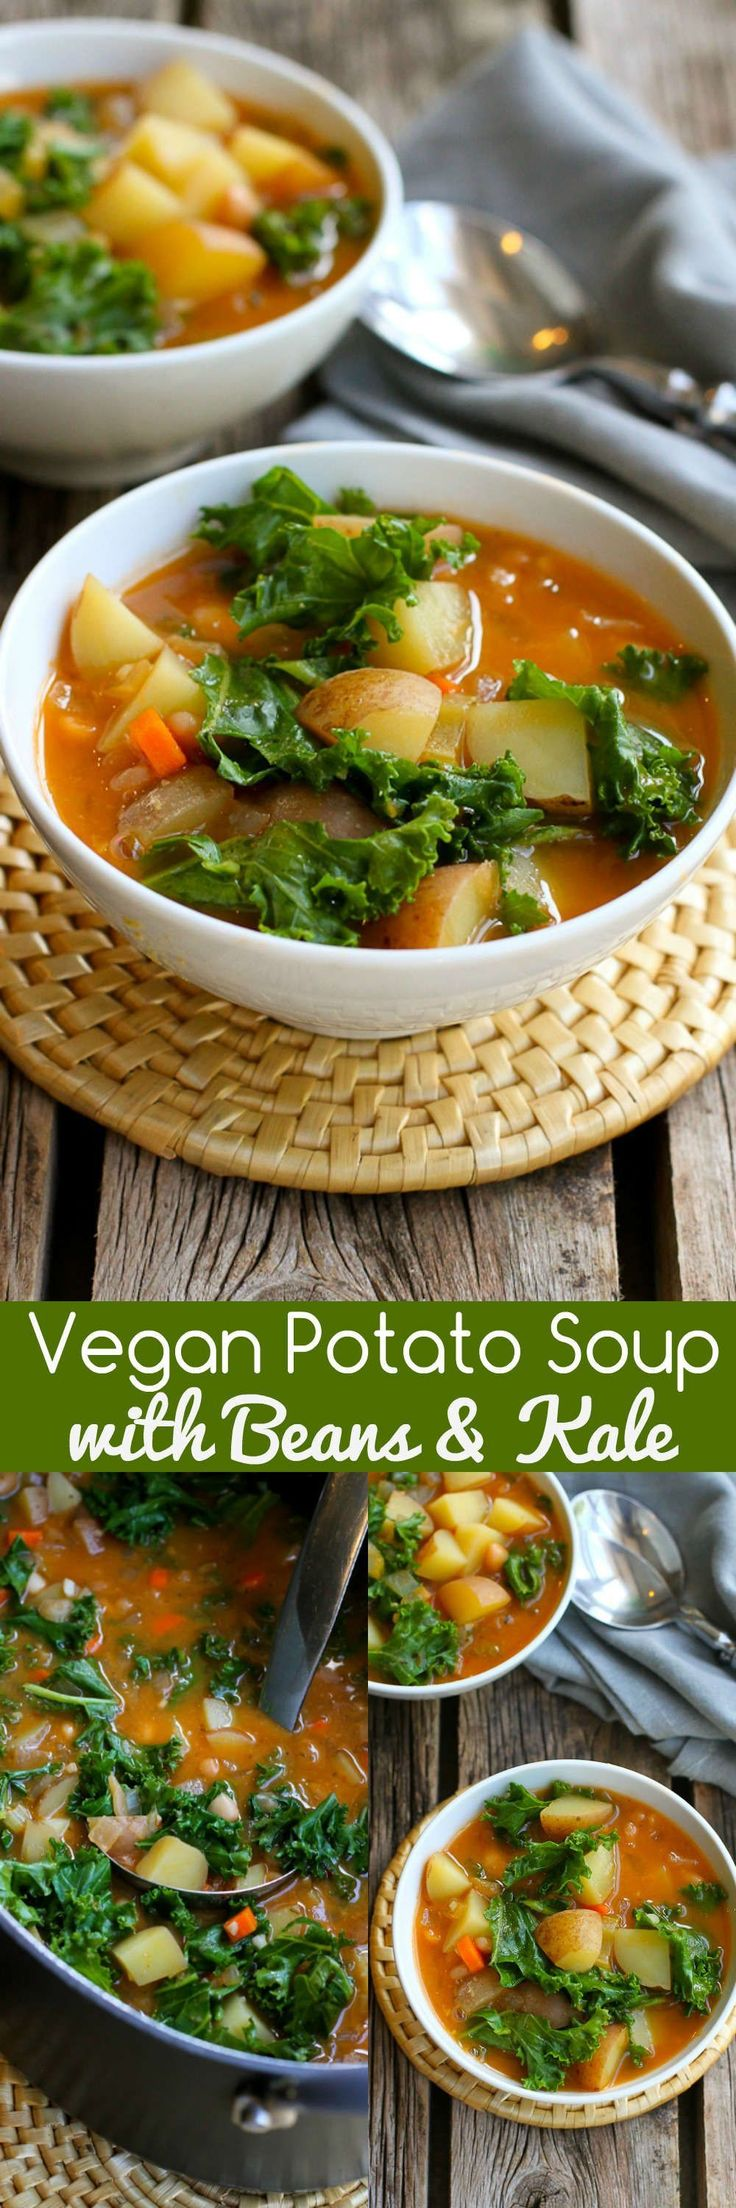 Vegan Potato Soup with Beans and Kale…You probably have everything in your fridge and pantry to make this delicious, healthy soup recipe! Great for busy nights. 211 calories and 5 Weight Watchers SmartPoints #deliciousAndHealthy What do you think?